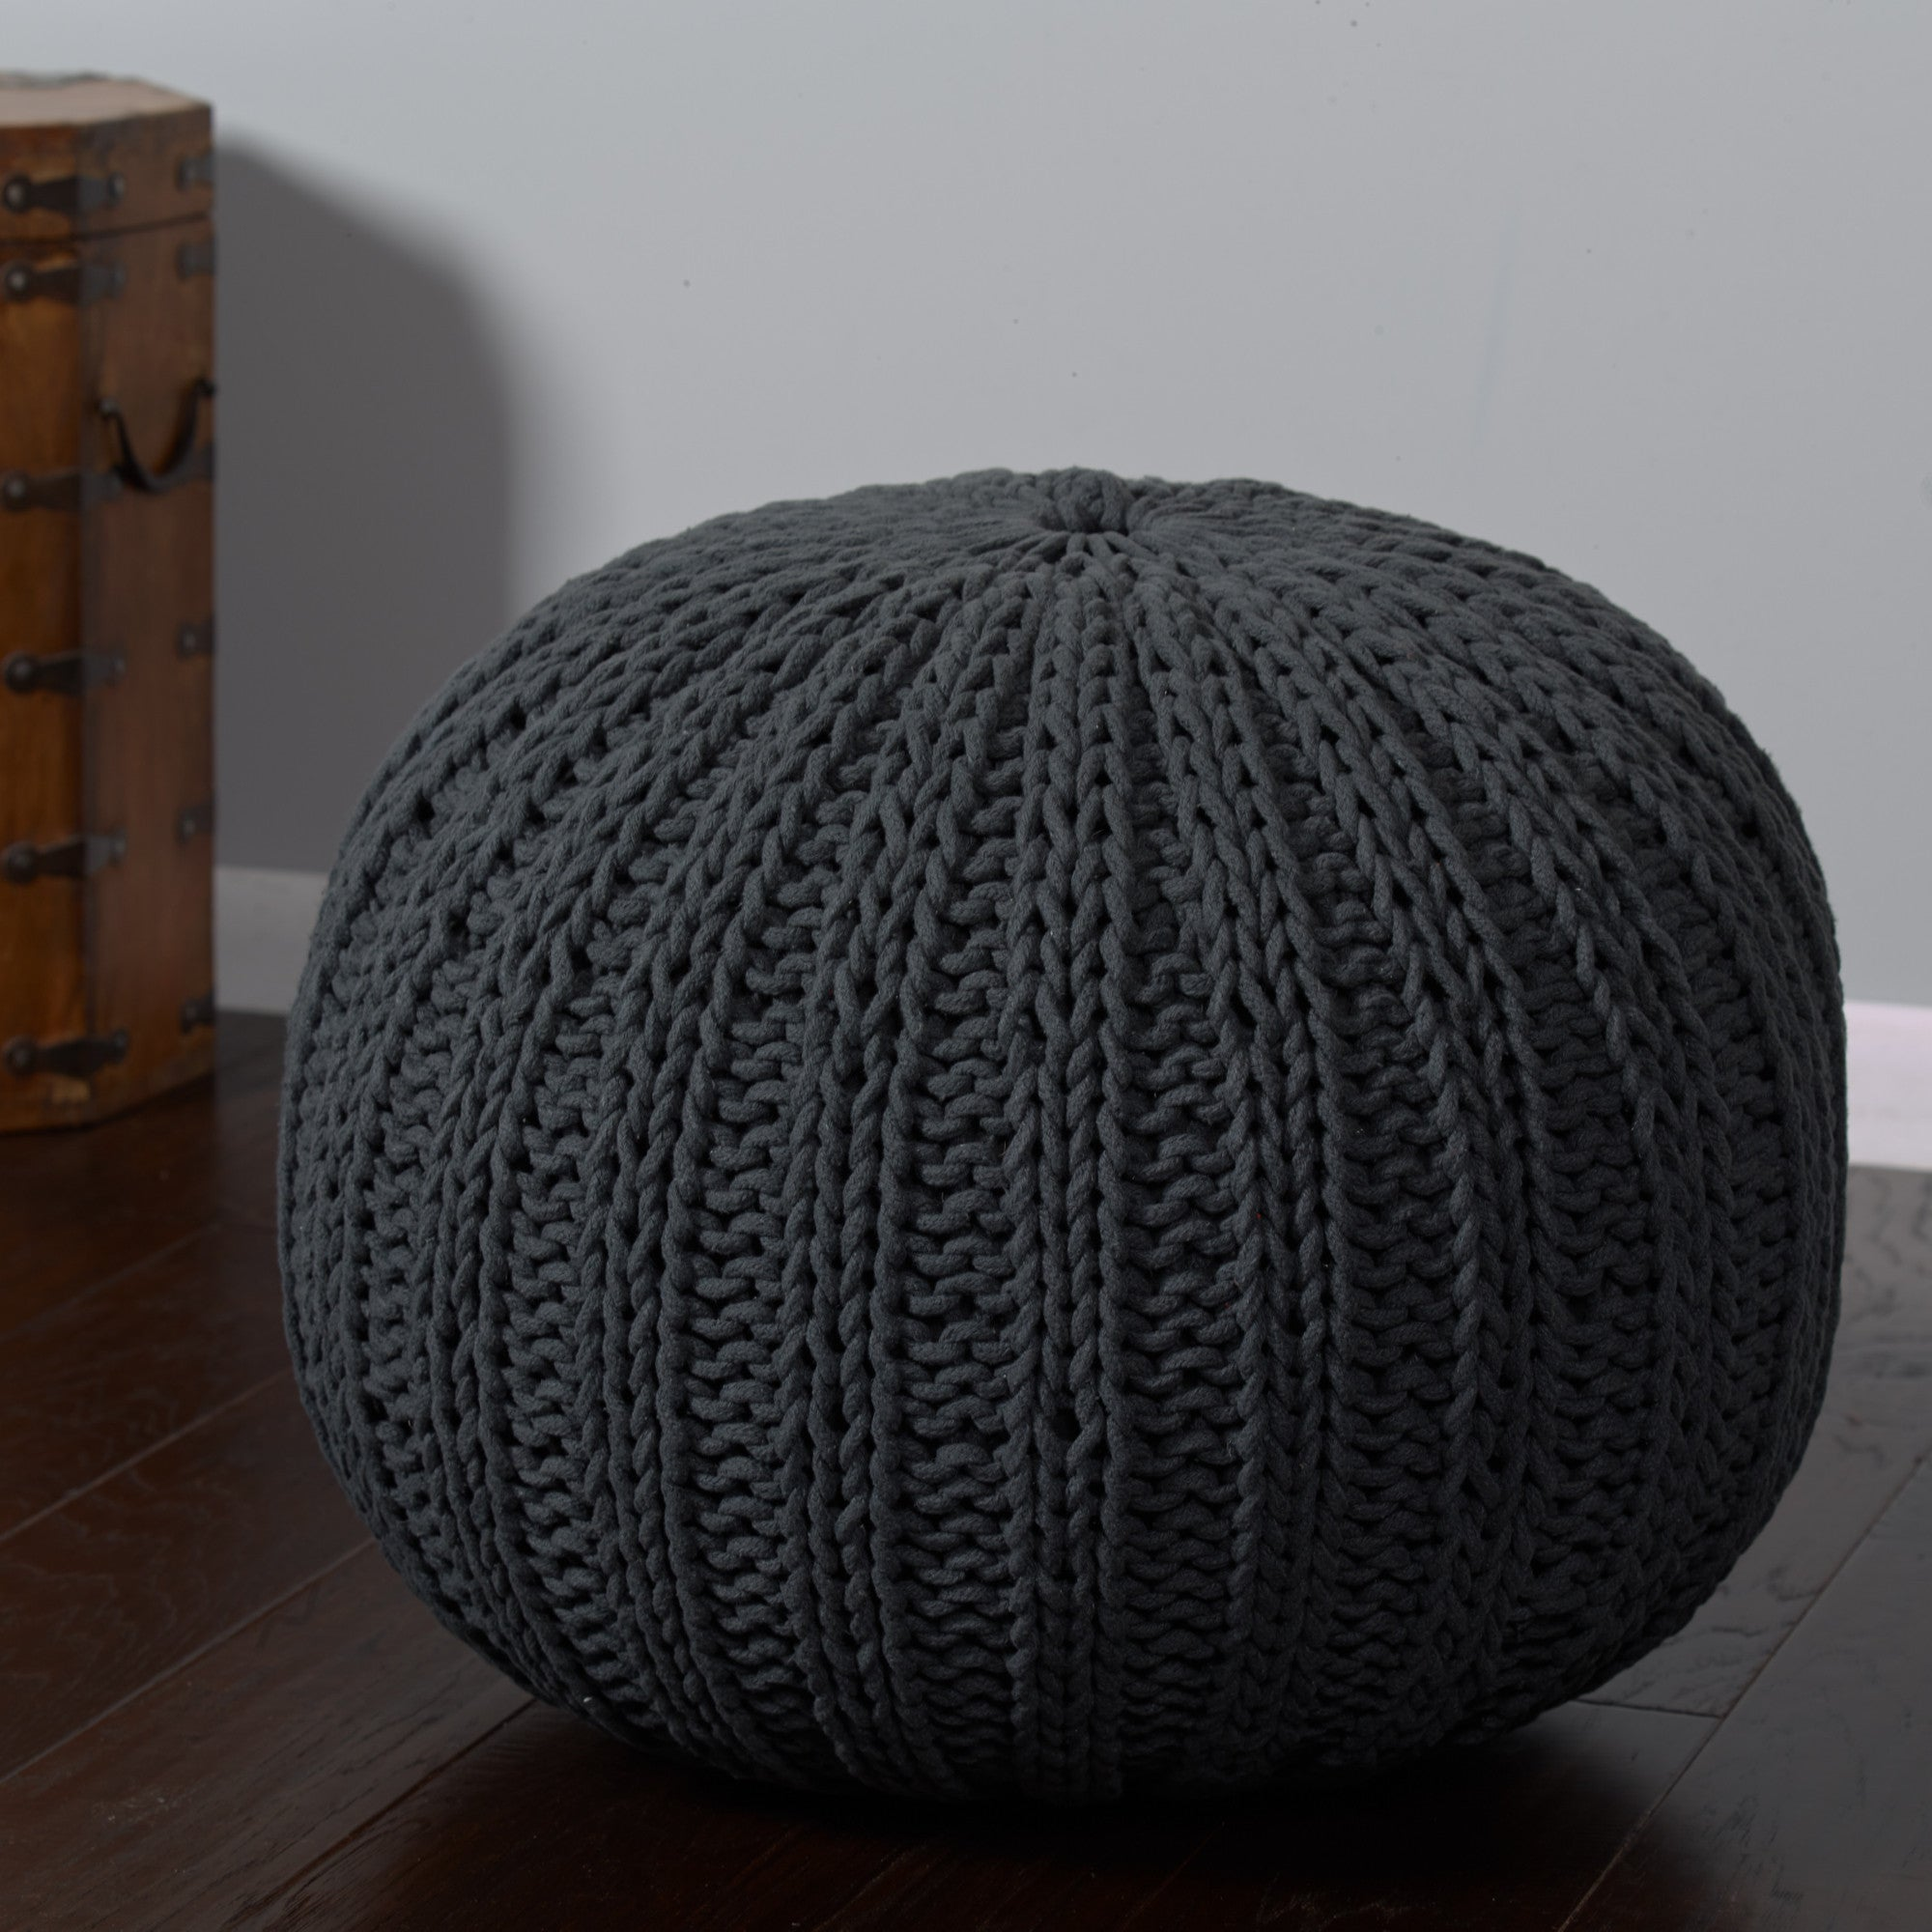 LR Resources Poufs 08124 Charcoal Pouf